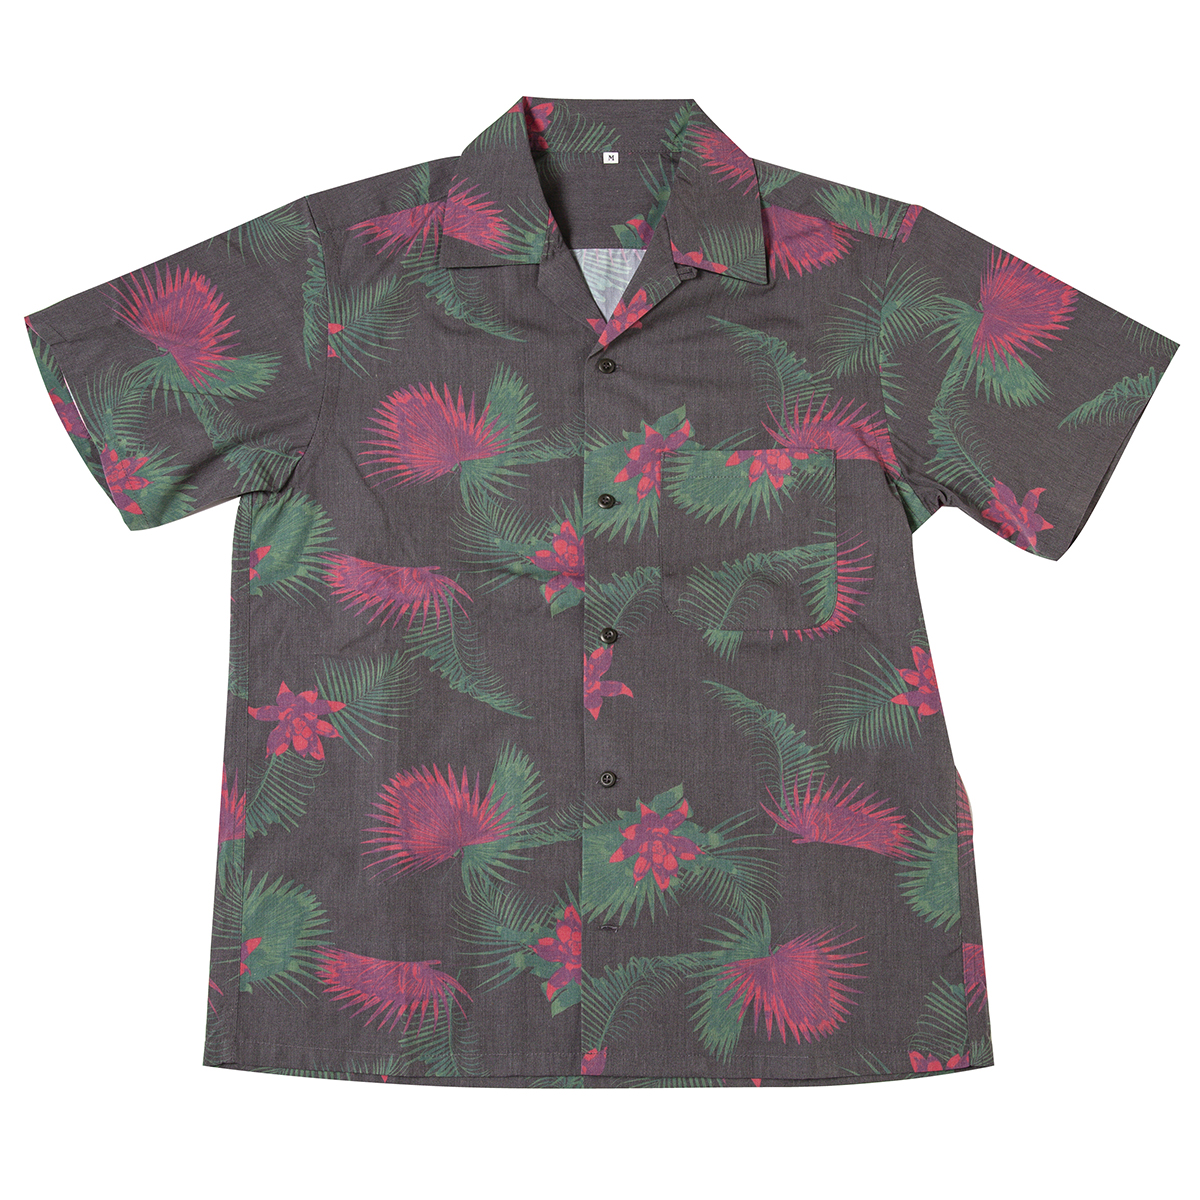 FEELGOOD SHIRT フィールグッドシャツ Number : s20-so-15 Fabric :Polyester 65% Cotton 35% Size : XS, S, M, L, XL Color:Black × Print Price : ¥12,800